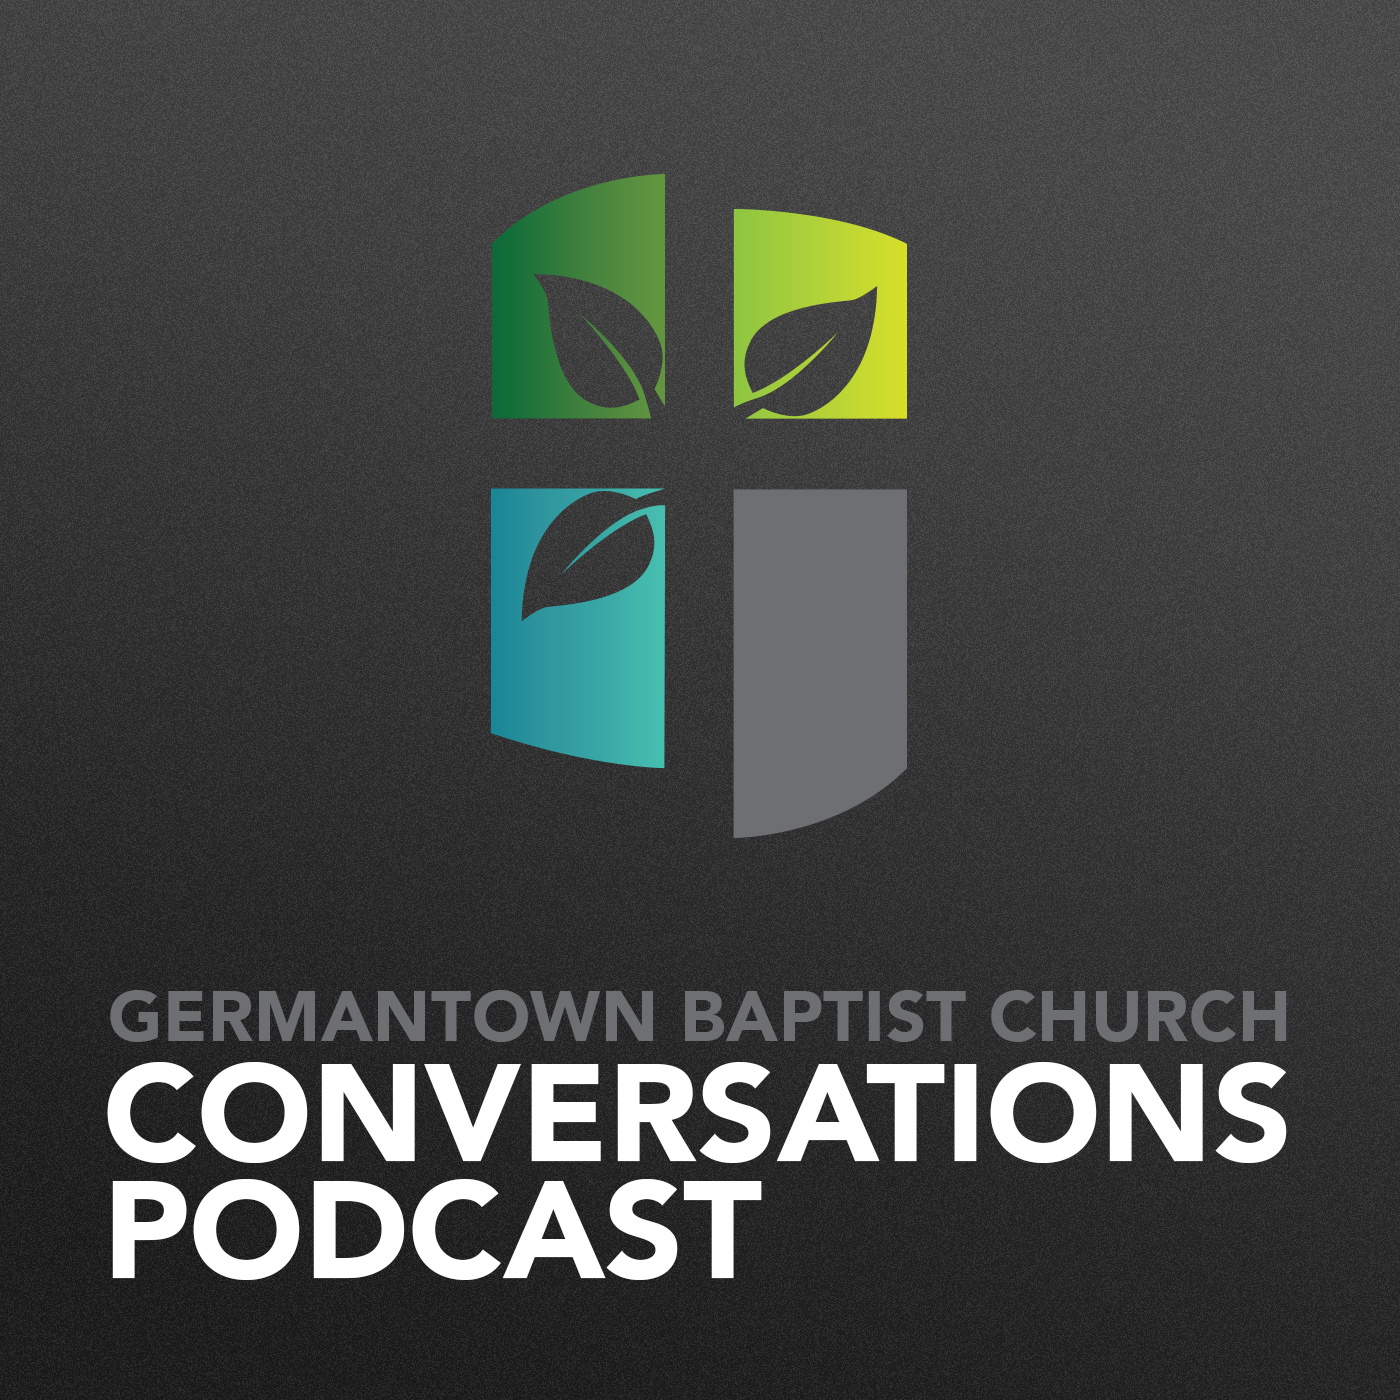 Conversations Podcast - Germantown Baptist Church